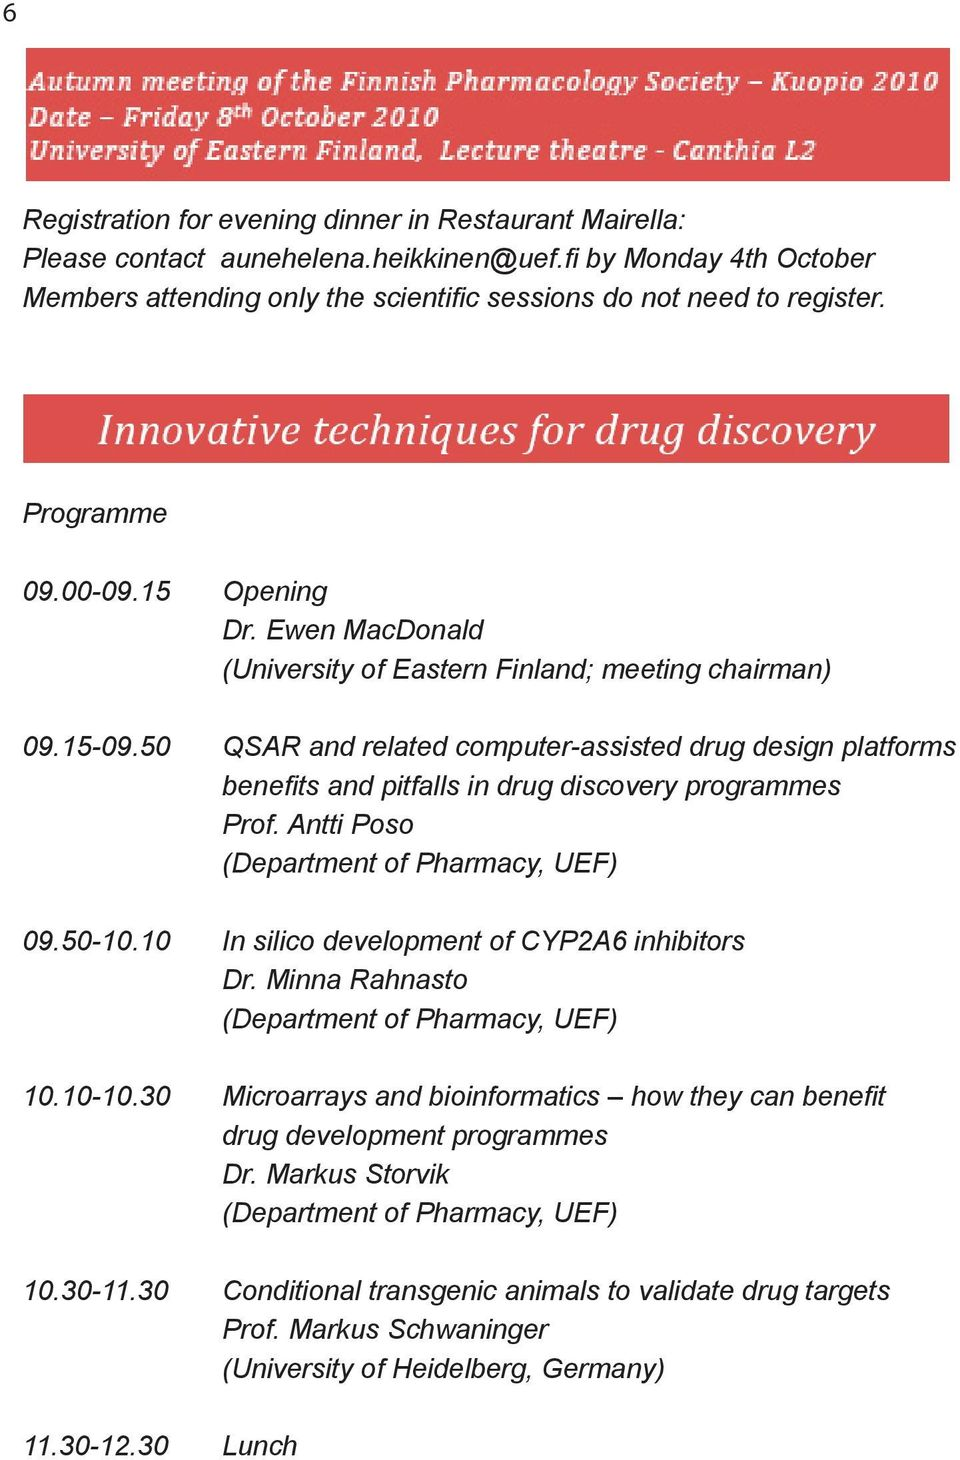 50 QSAR and related computer-assisted drug design platforms benefits and pitfalls in drug discovery programmes Prof. Antti Poso (Department of Pharmacy, UEF) 09.50-10.